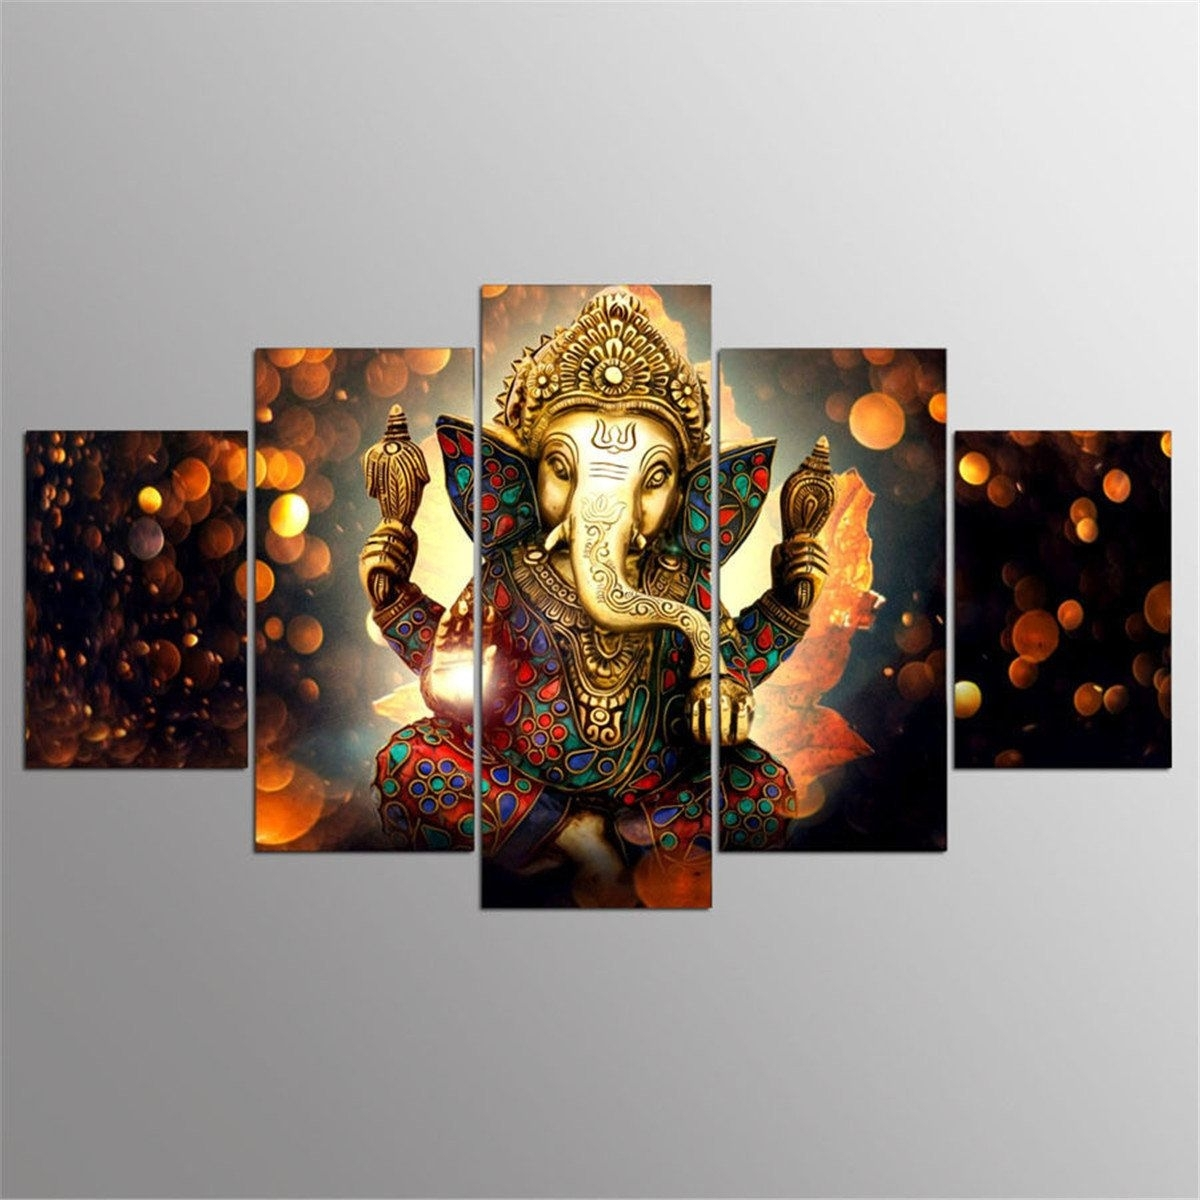 5Pcs Ganesha Painting Abstract Print Modern Canvas Wall Art Poster intended for Latest Modern Wall Art Decors